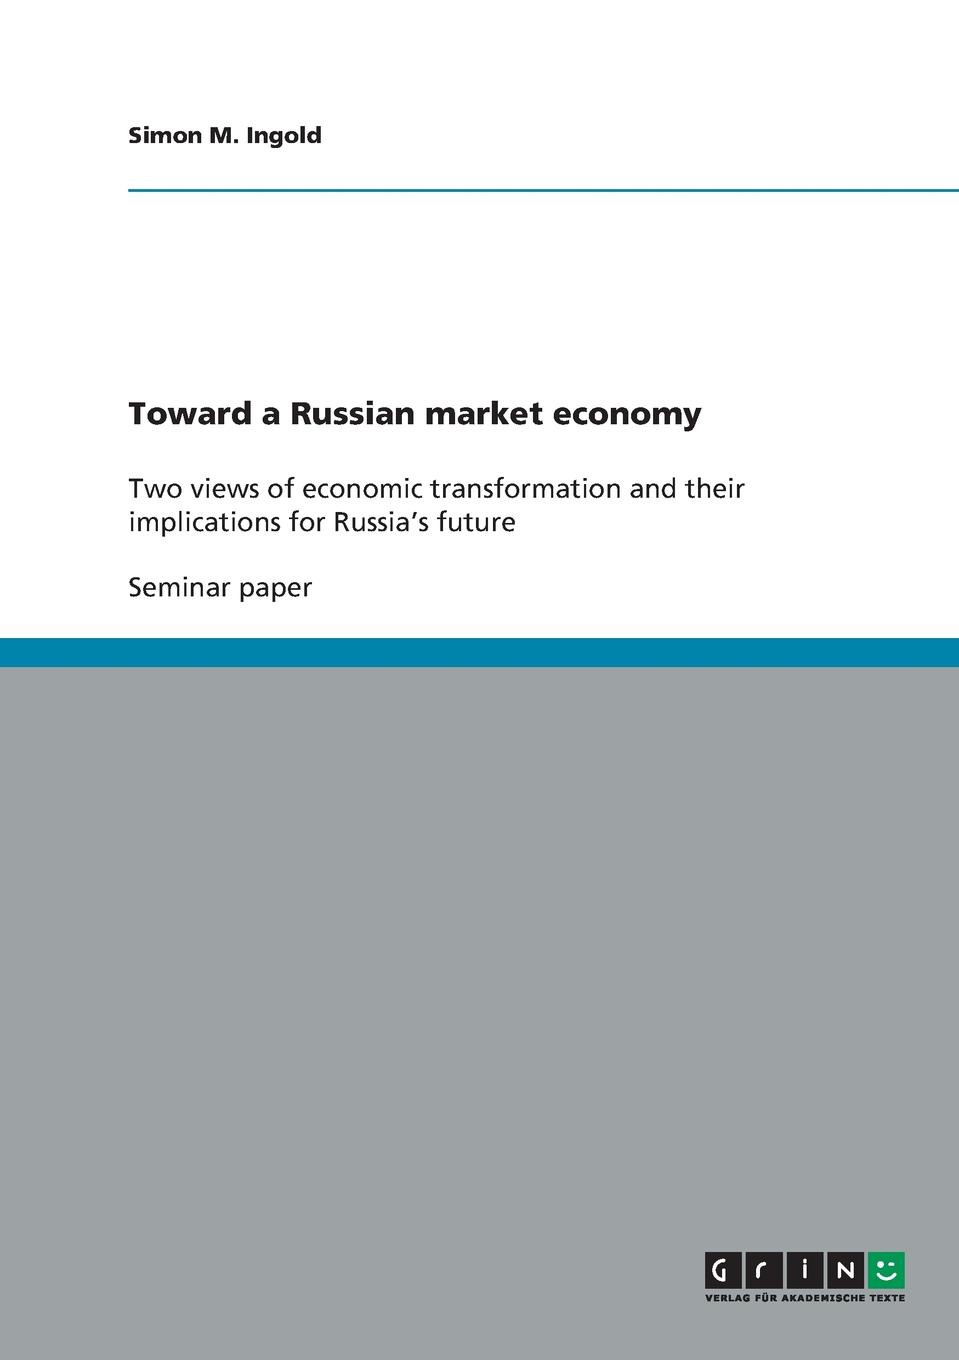 Simon M. Ingold Toward a Russian market economy gender culture and politics in punjab a perspective